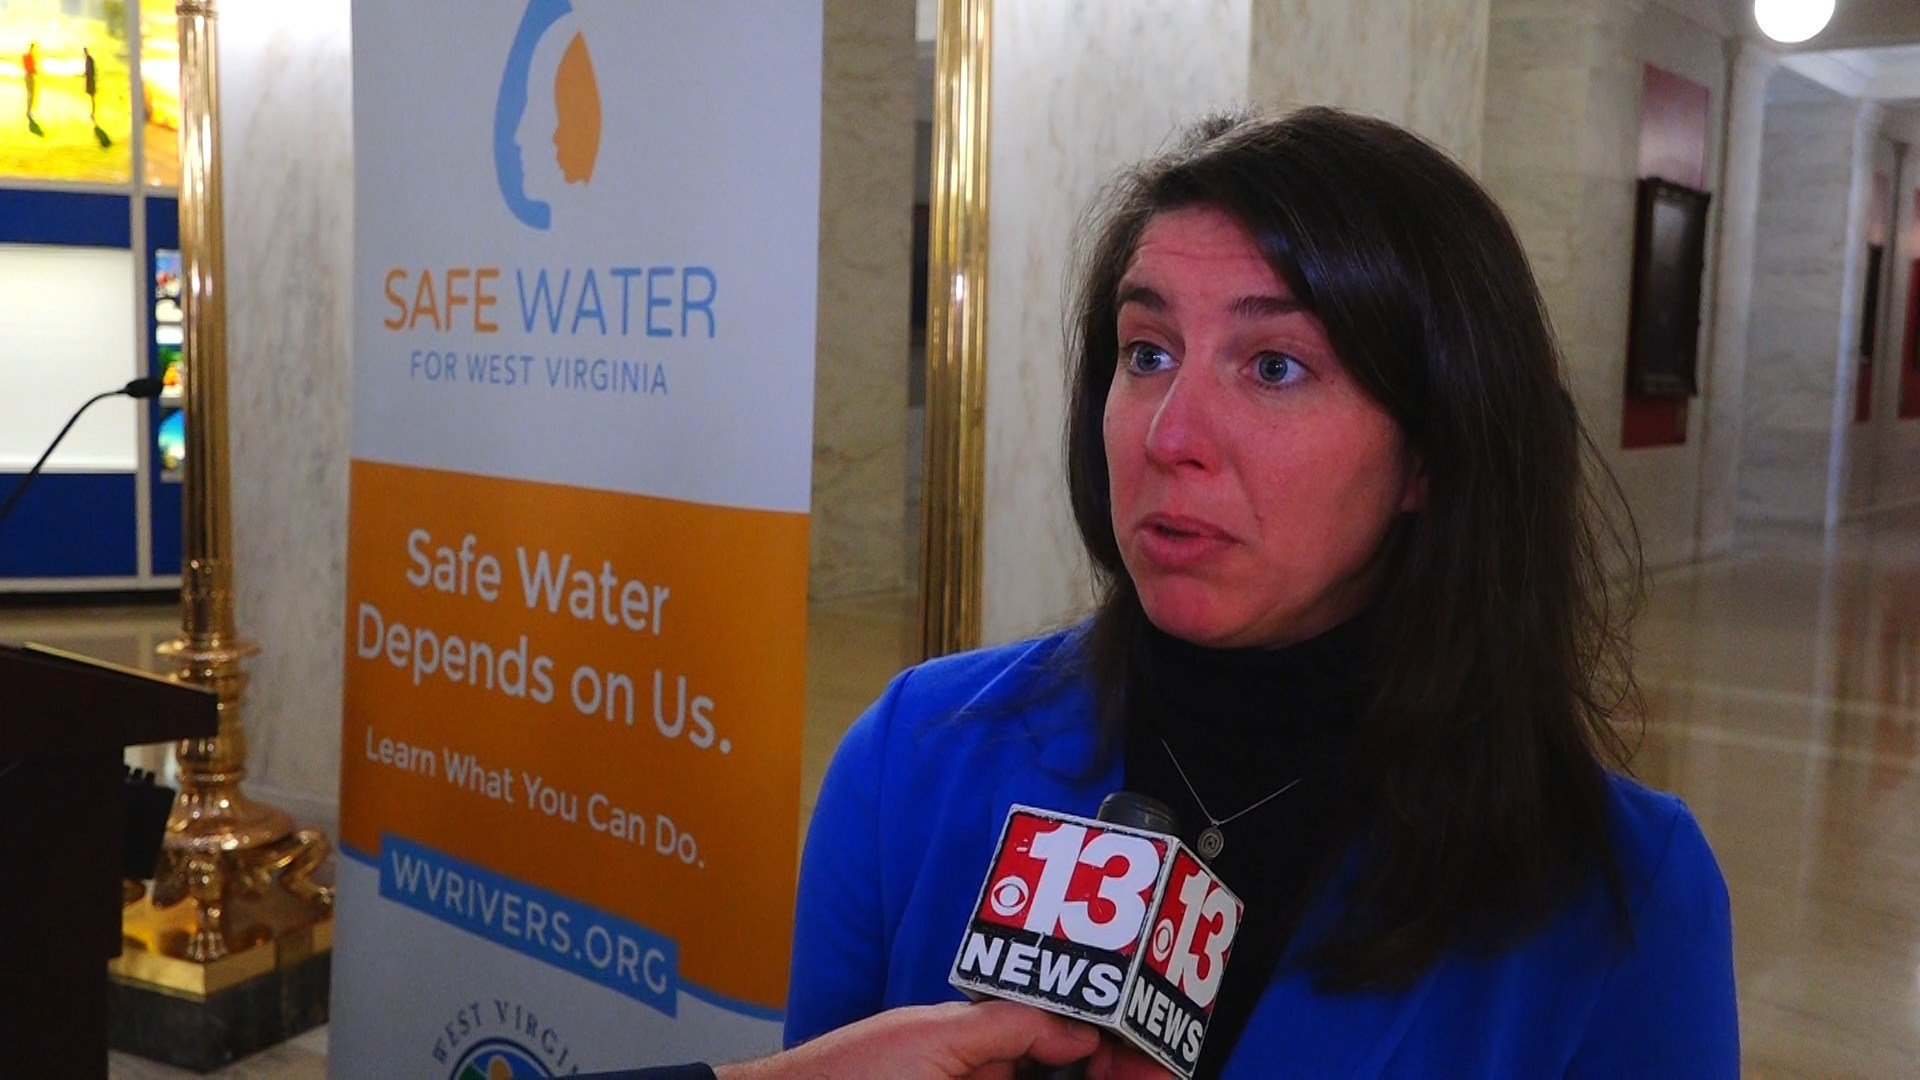 Angie Rosser is with West Virginia Rivers Coalition